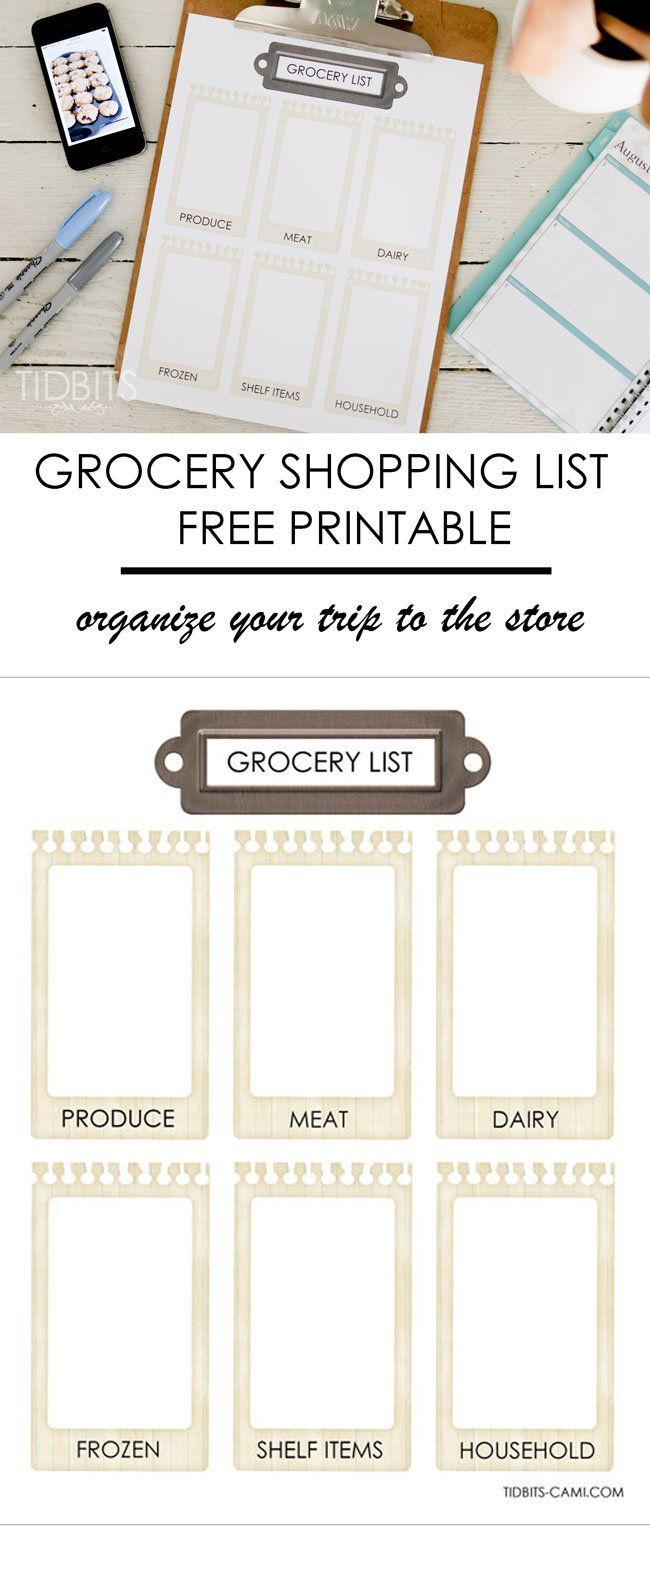 Grocery shopping list printable - perfect for organizing your trips to the store...